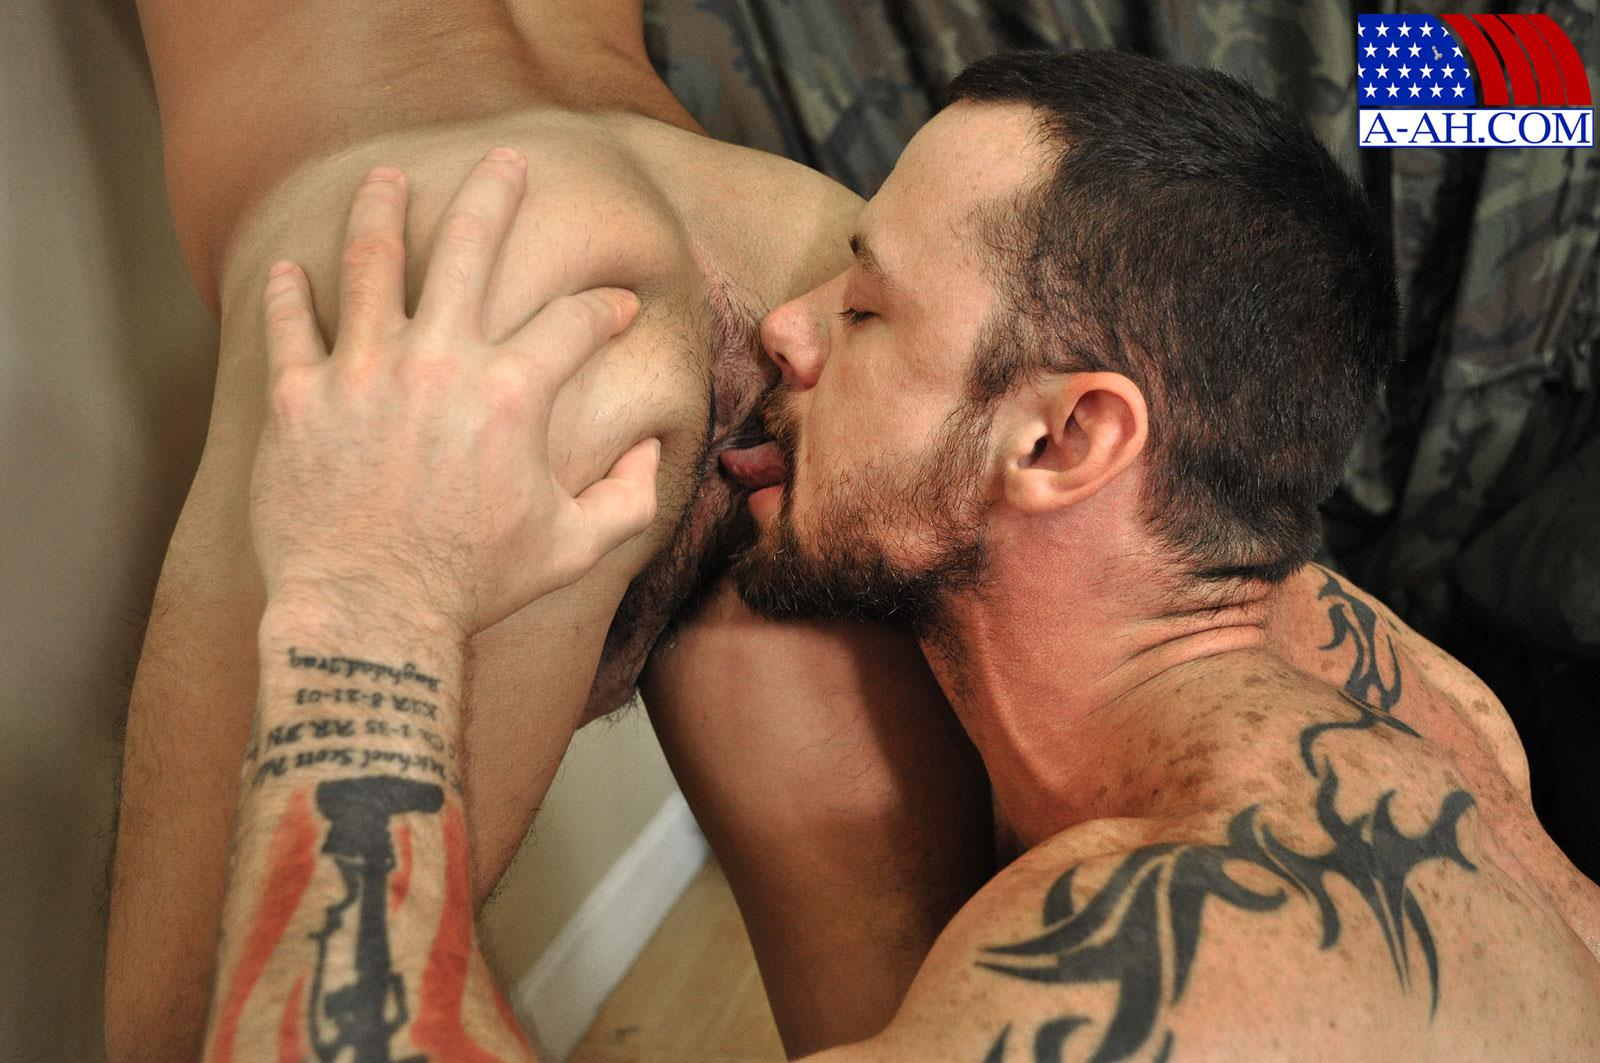 All-American-Heroes-SERGEANT-MILES-AND-AIRMAN-FIRST-CLASS-PAOLO-swapping-blow-jobs-and-cum-Amateur-Gay-Porn-10 Army Sergeant and an Airman Trade Blow Jobs And Eat Cum